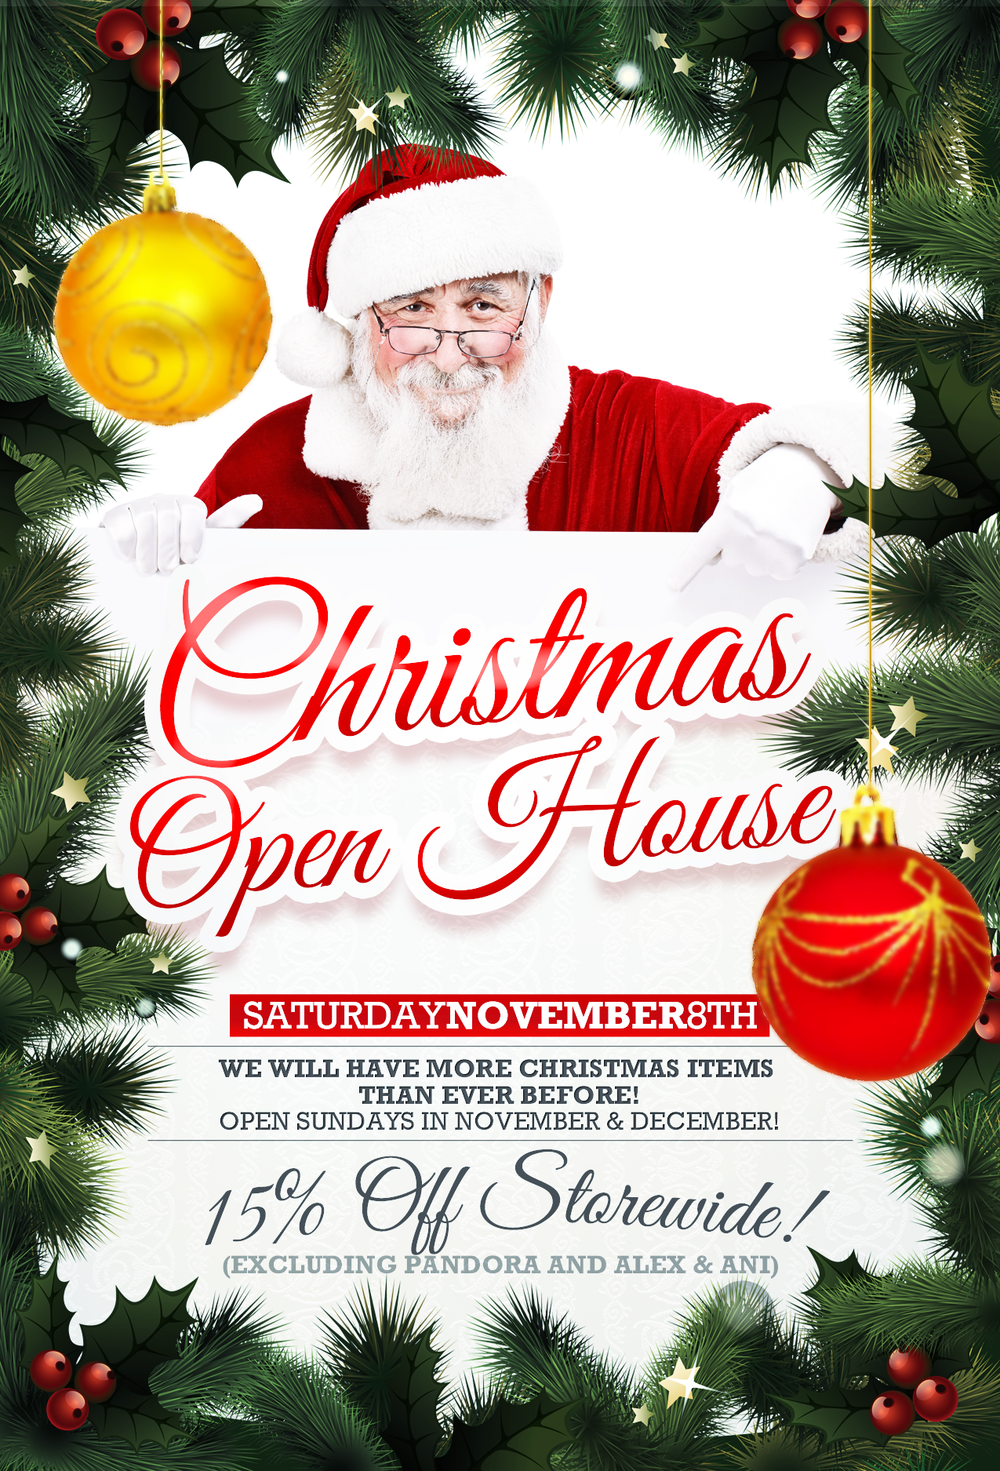 Curiosity Shoppe Christmas Open House Poster